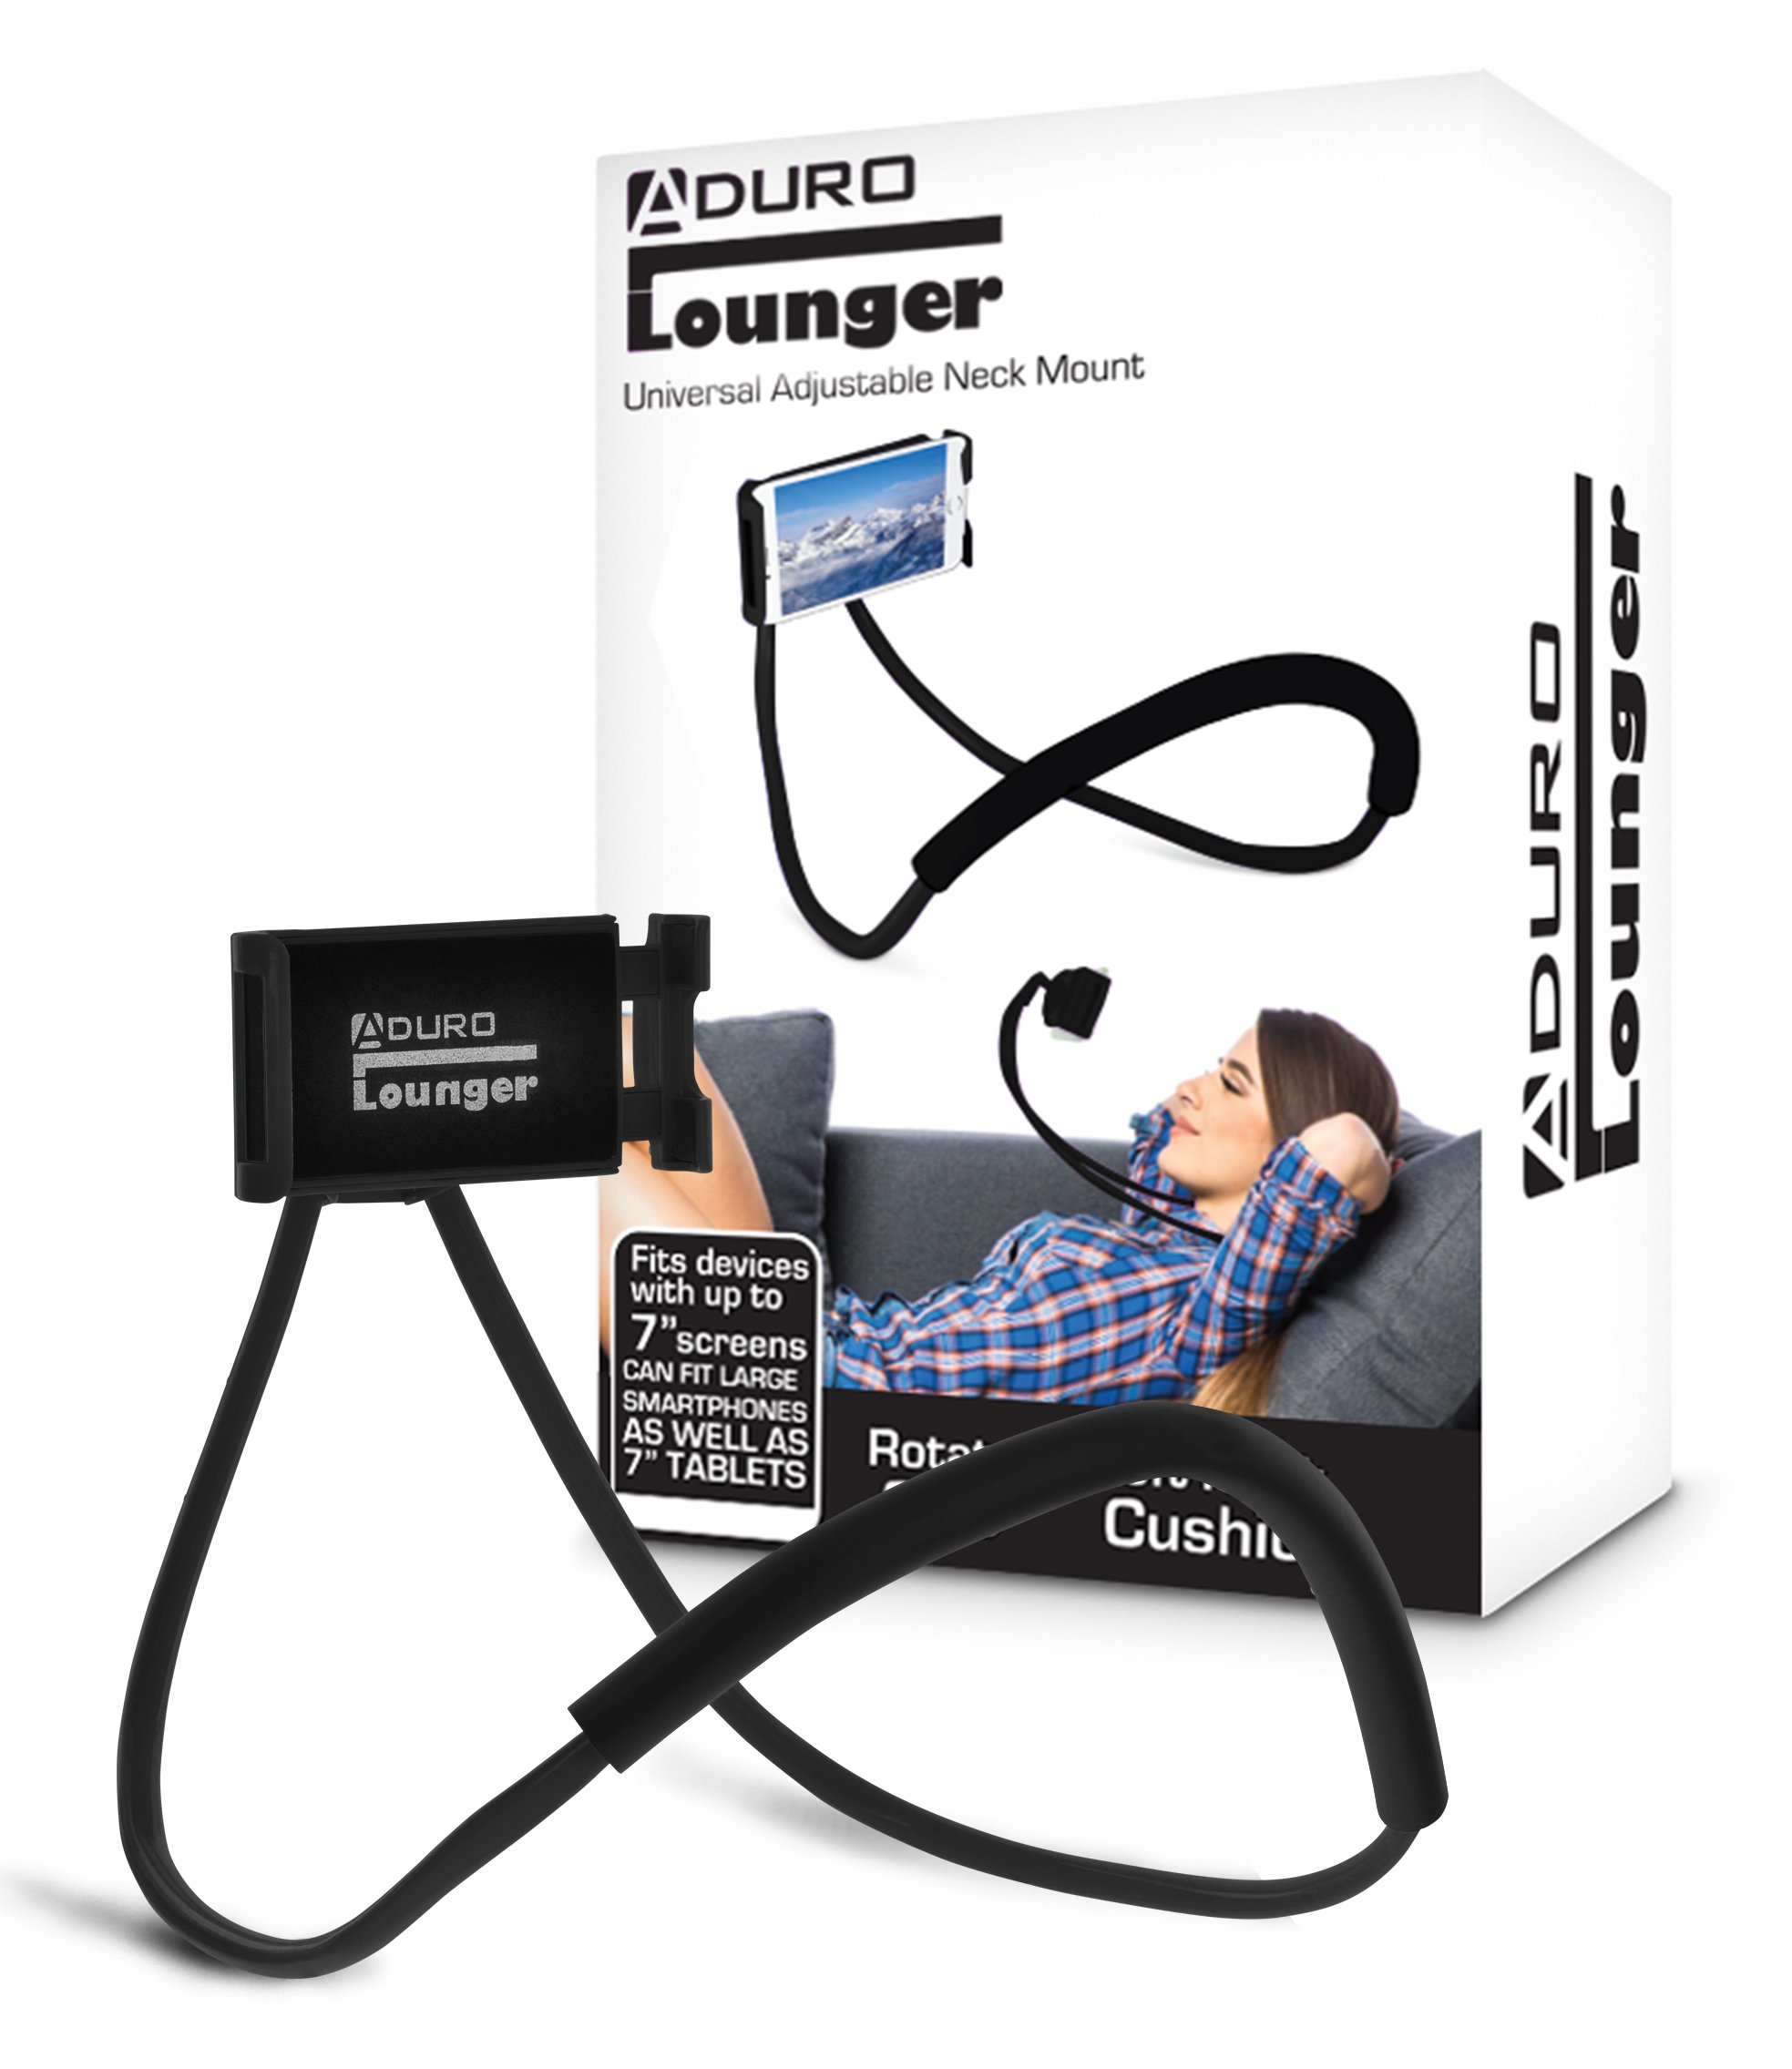 Aduro Phone Neck Holder, Gooseneck Lazy Neck Phone Mount to Free Your Hands for iPhone Android Smartphone by Aduro